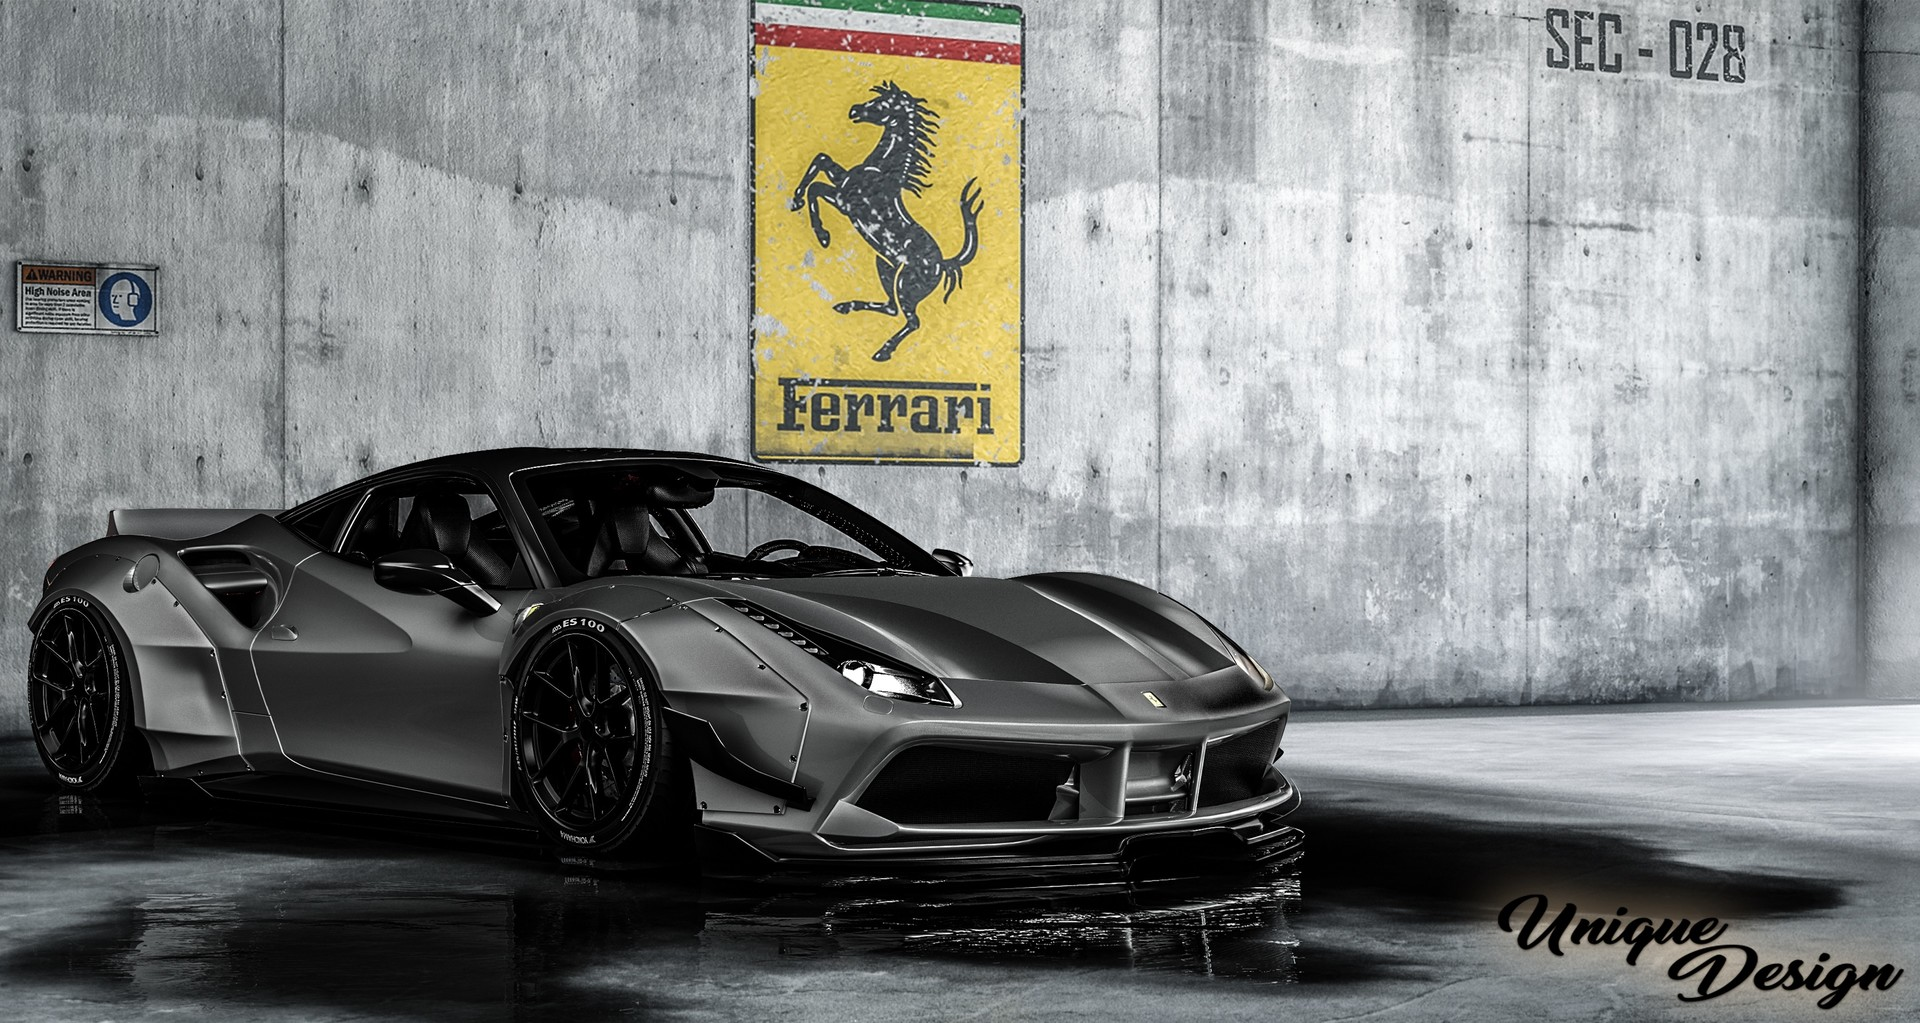 artstation ferrari 488 liberty walk widebody workshop. Black Bedroom Furniture Sets. Home Design Ideas